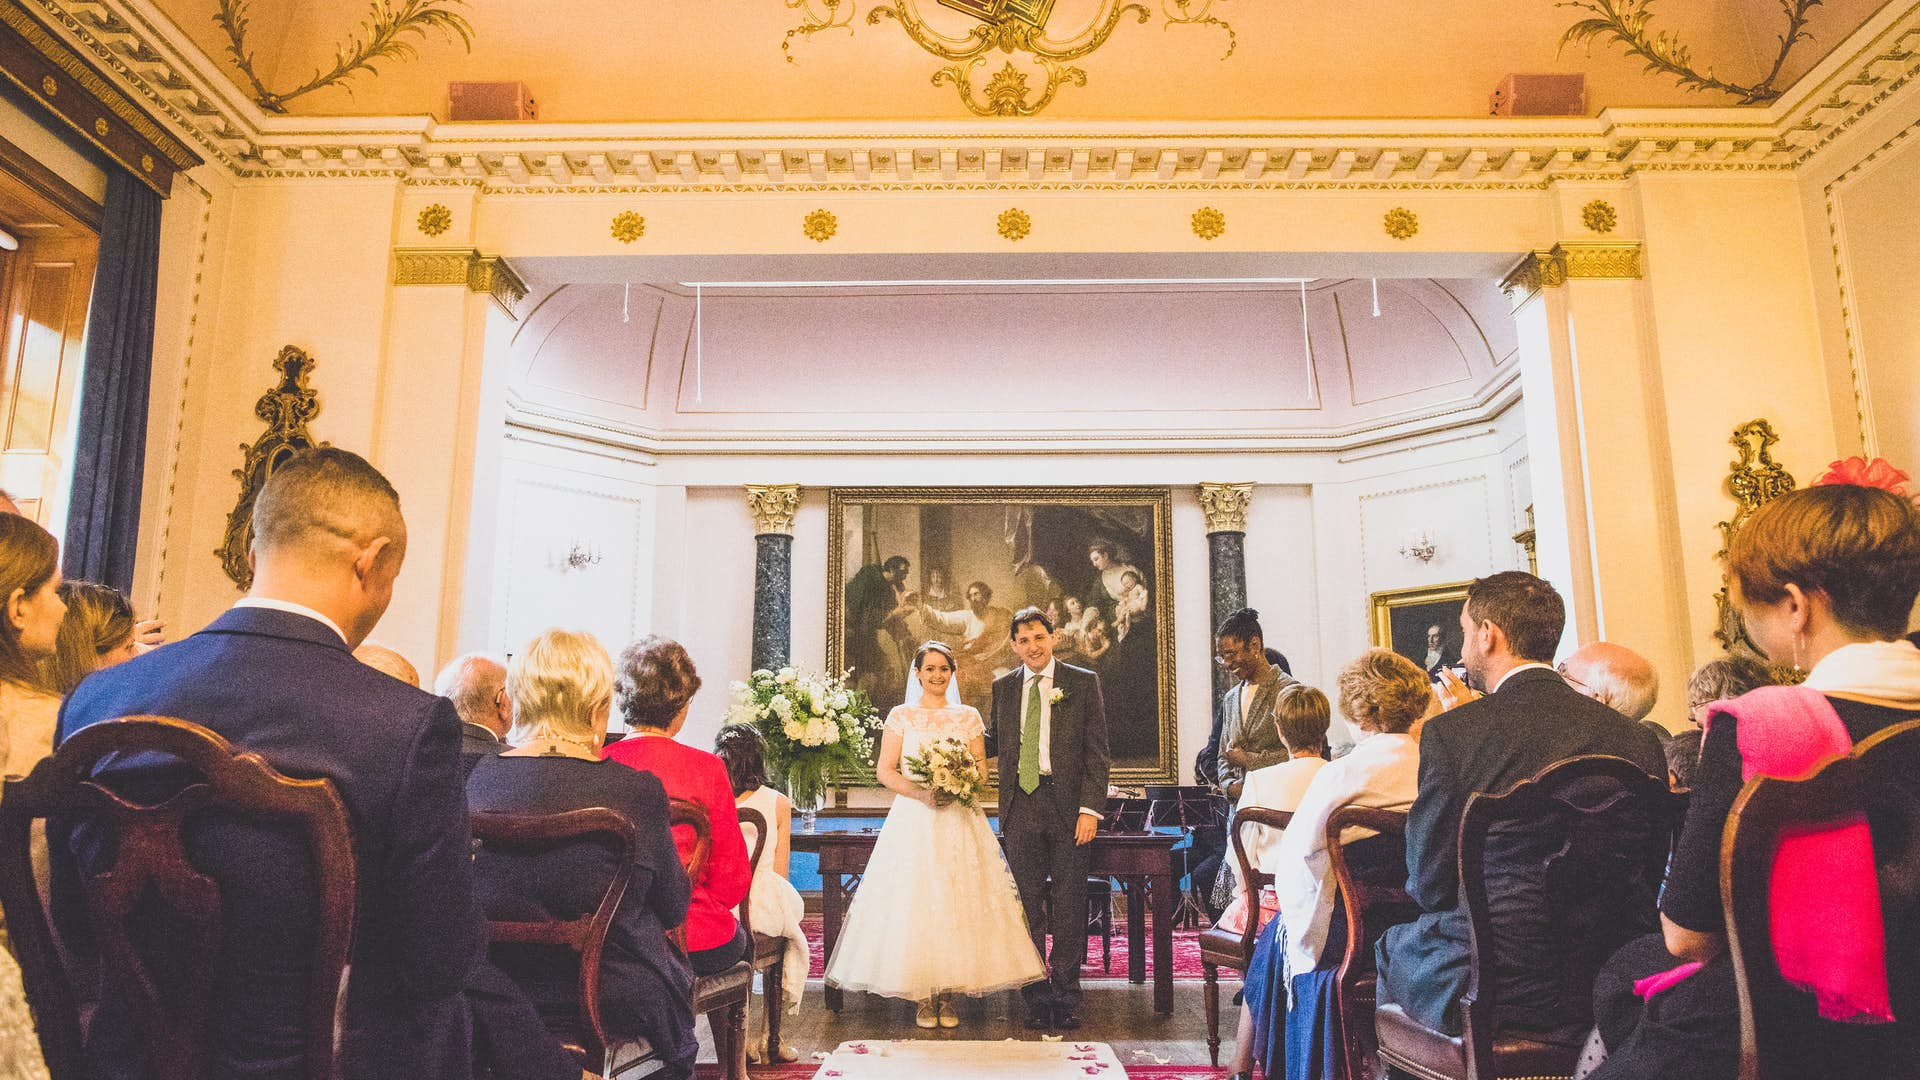 The 12 Best Wedding Reception Venues for Hire in London